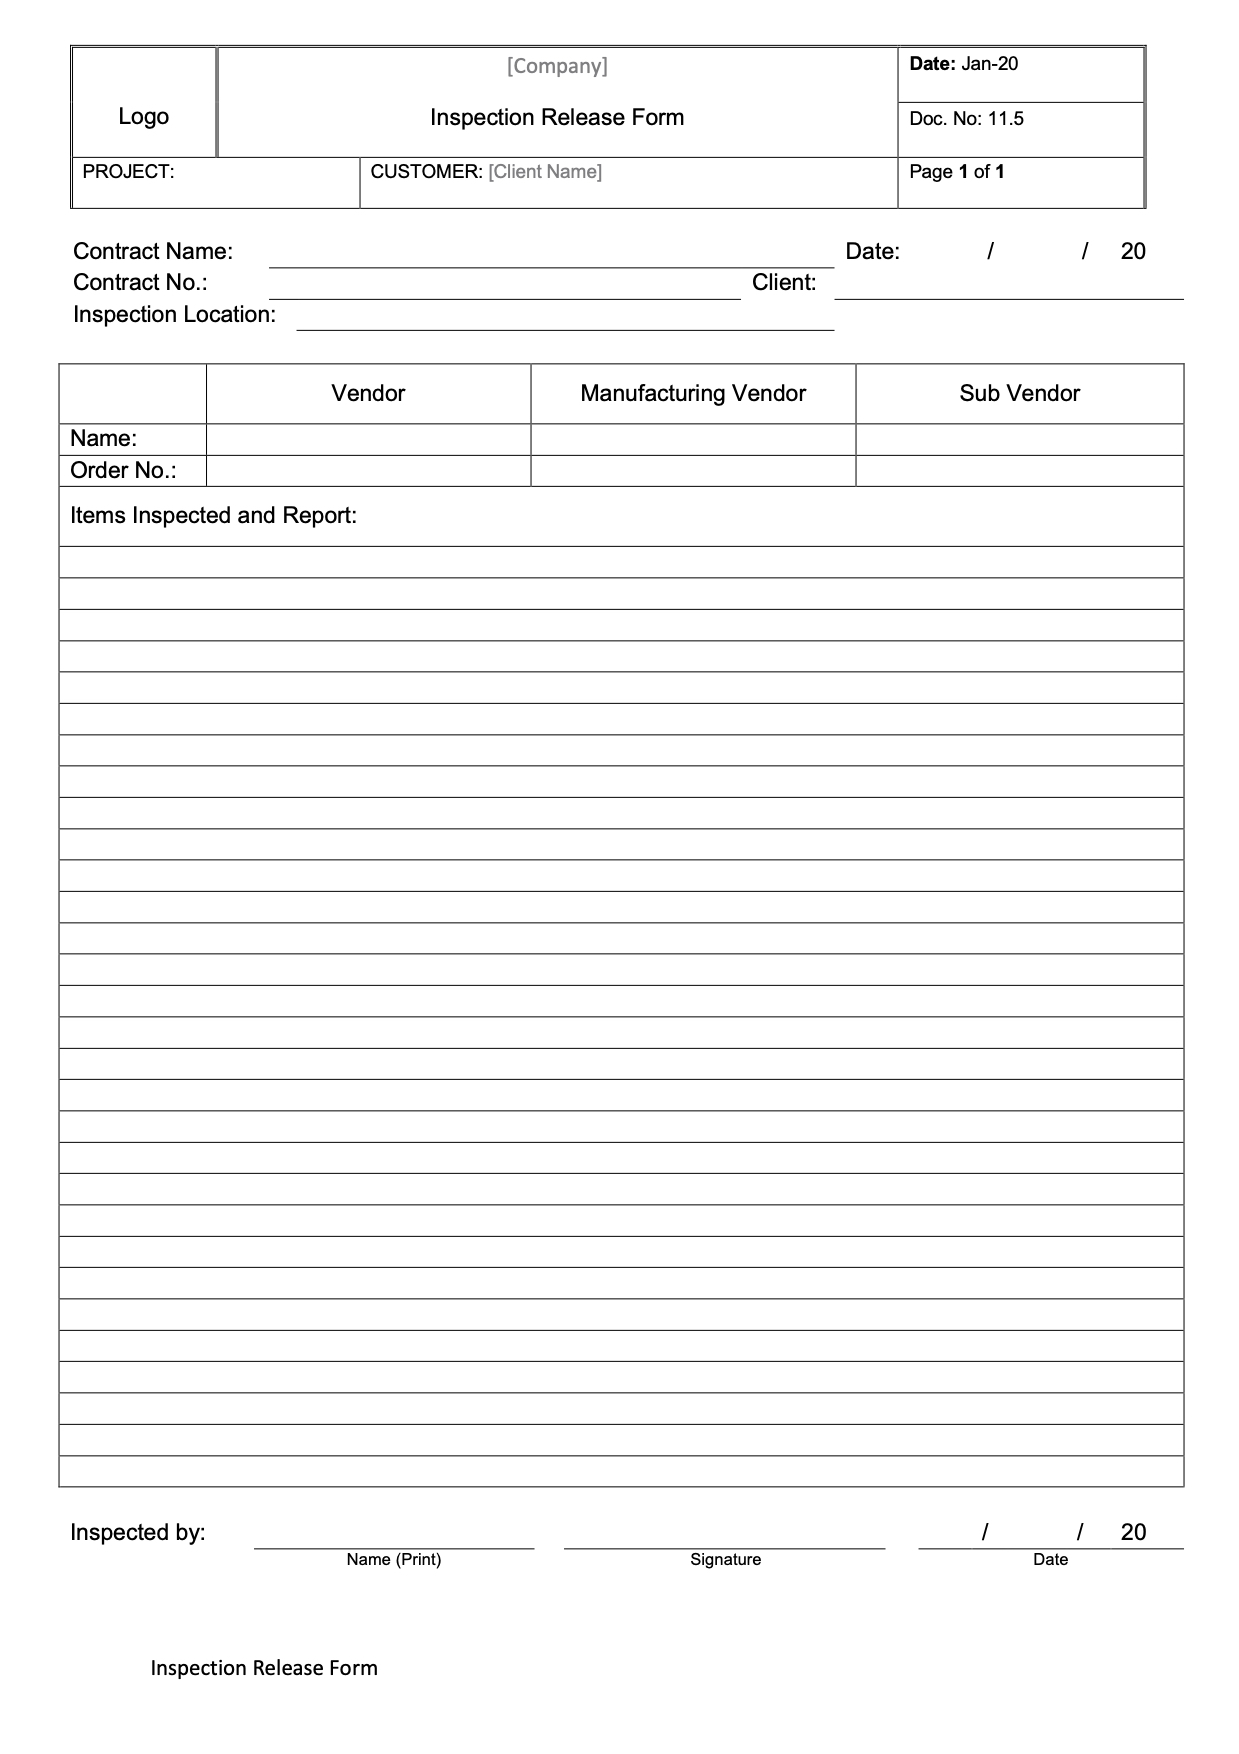 CT006 - Inspection Release Form